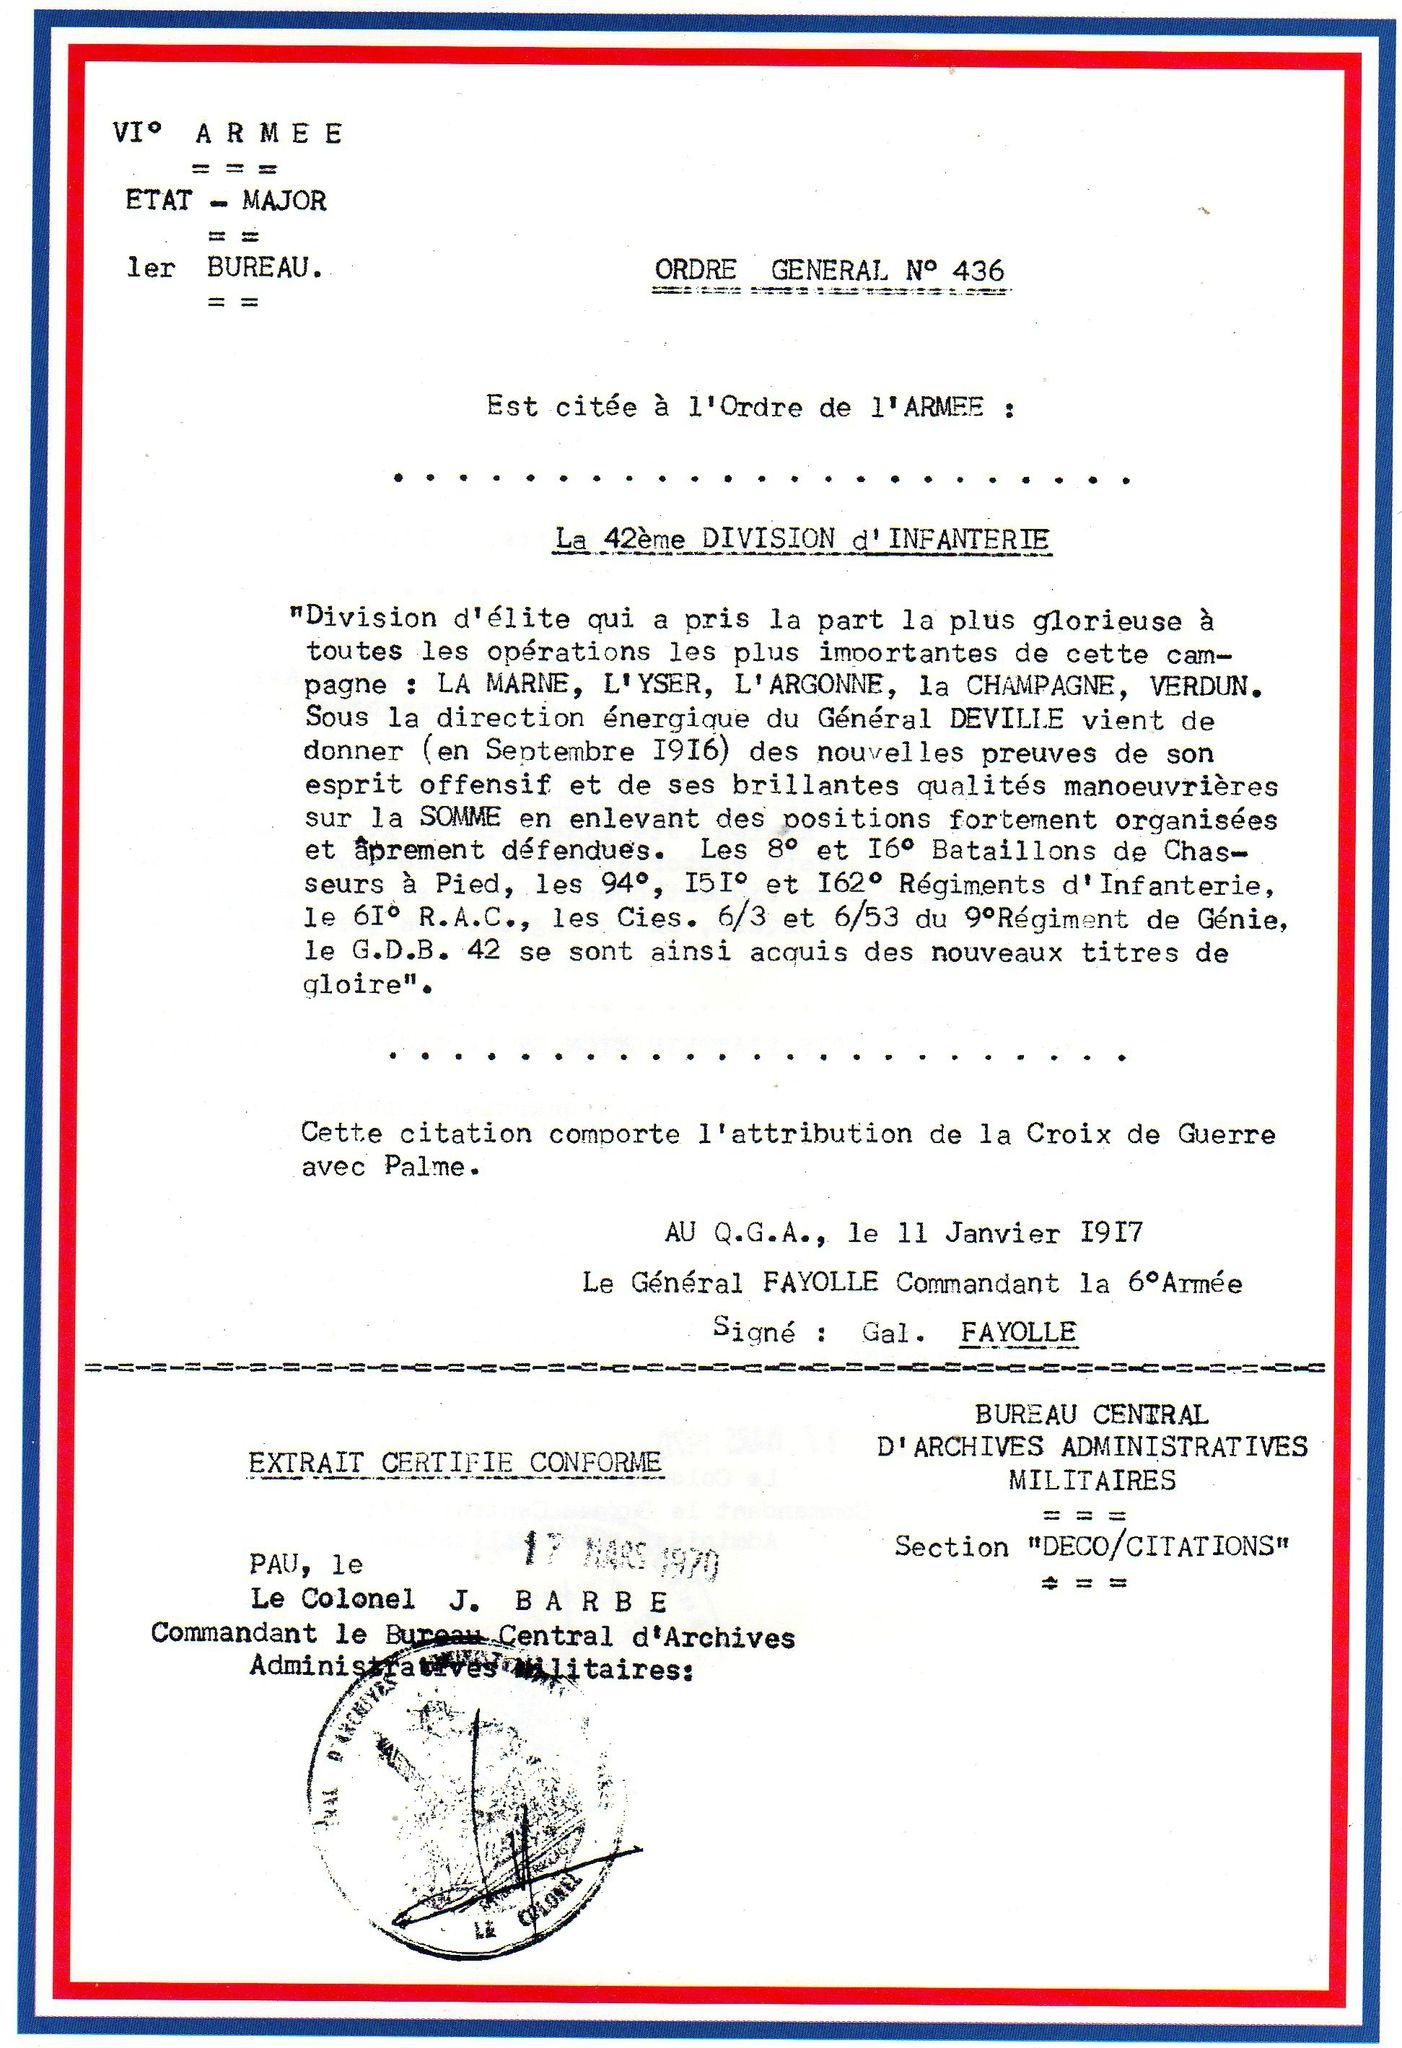 Les citations du bataillon de sidi brahim bataillon de - Bureau central des archives militaires ...